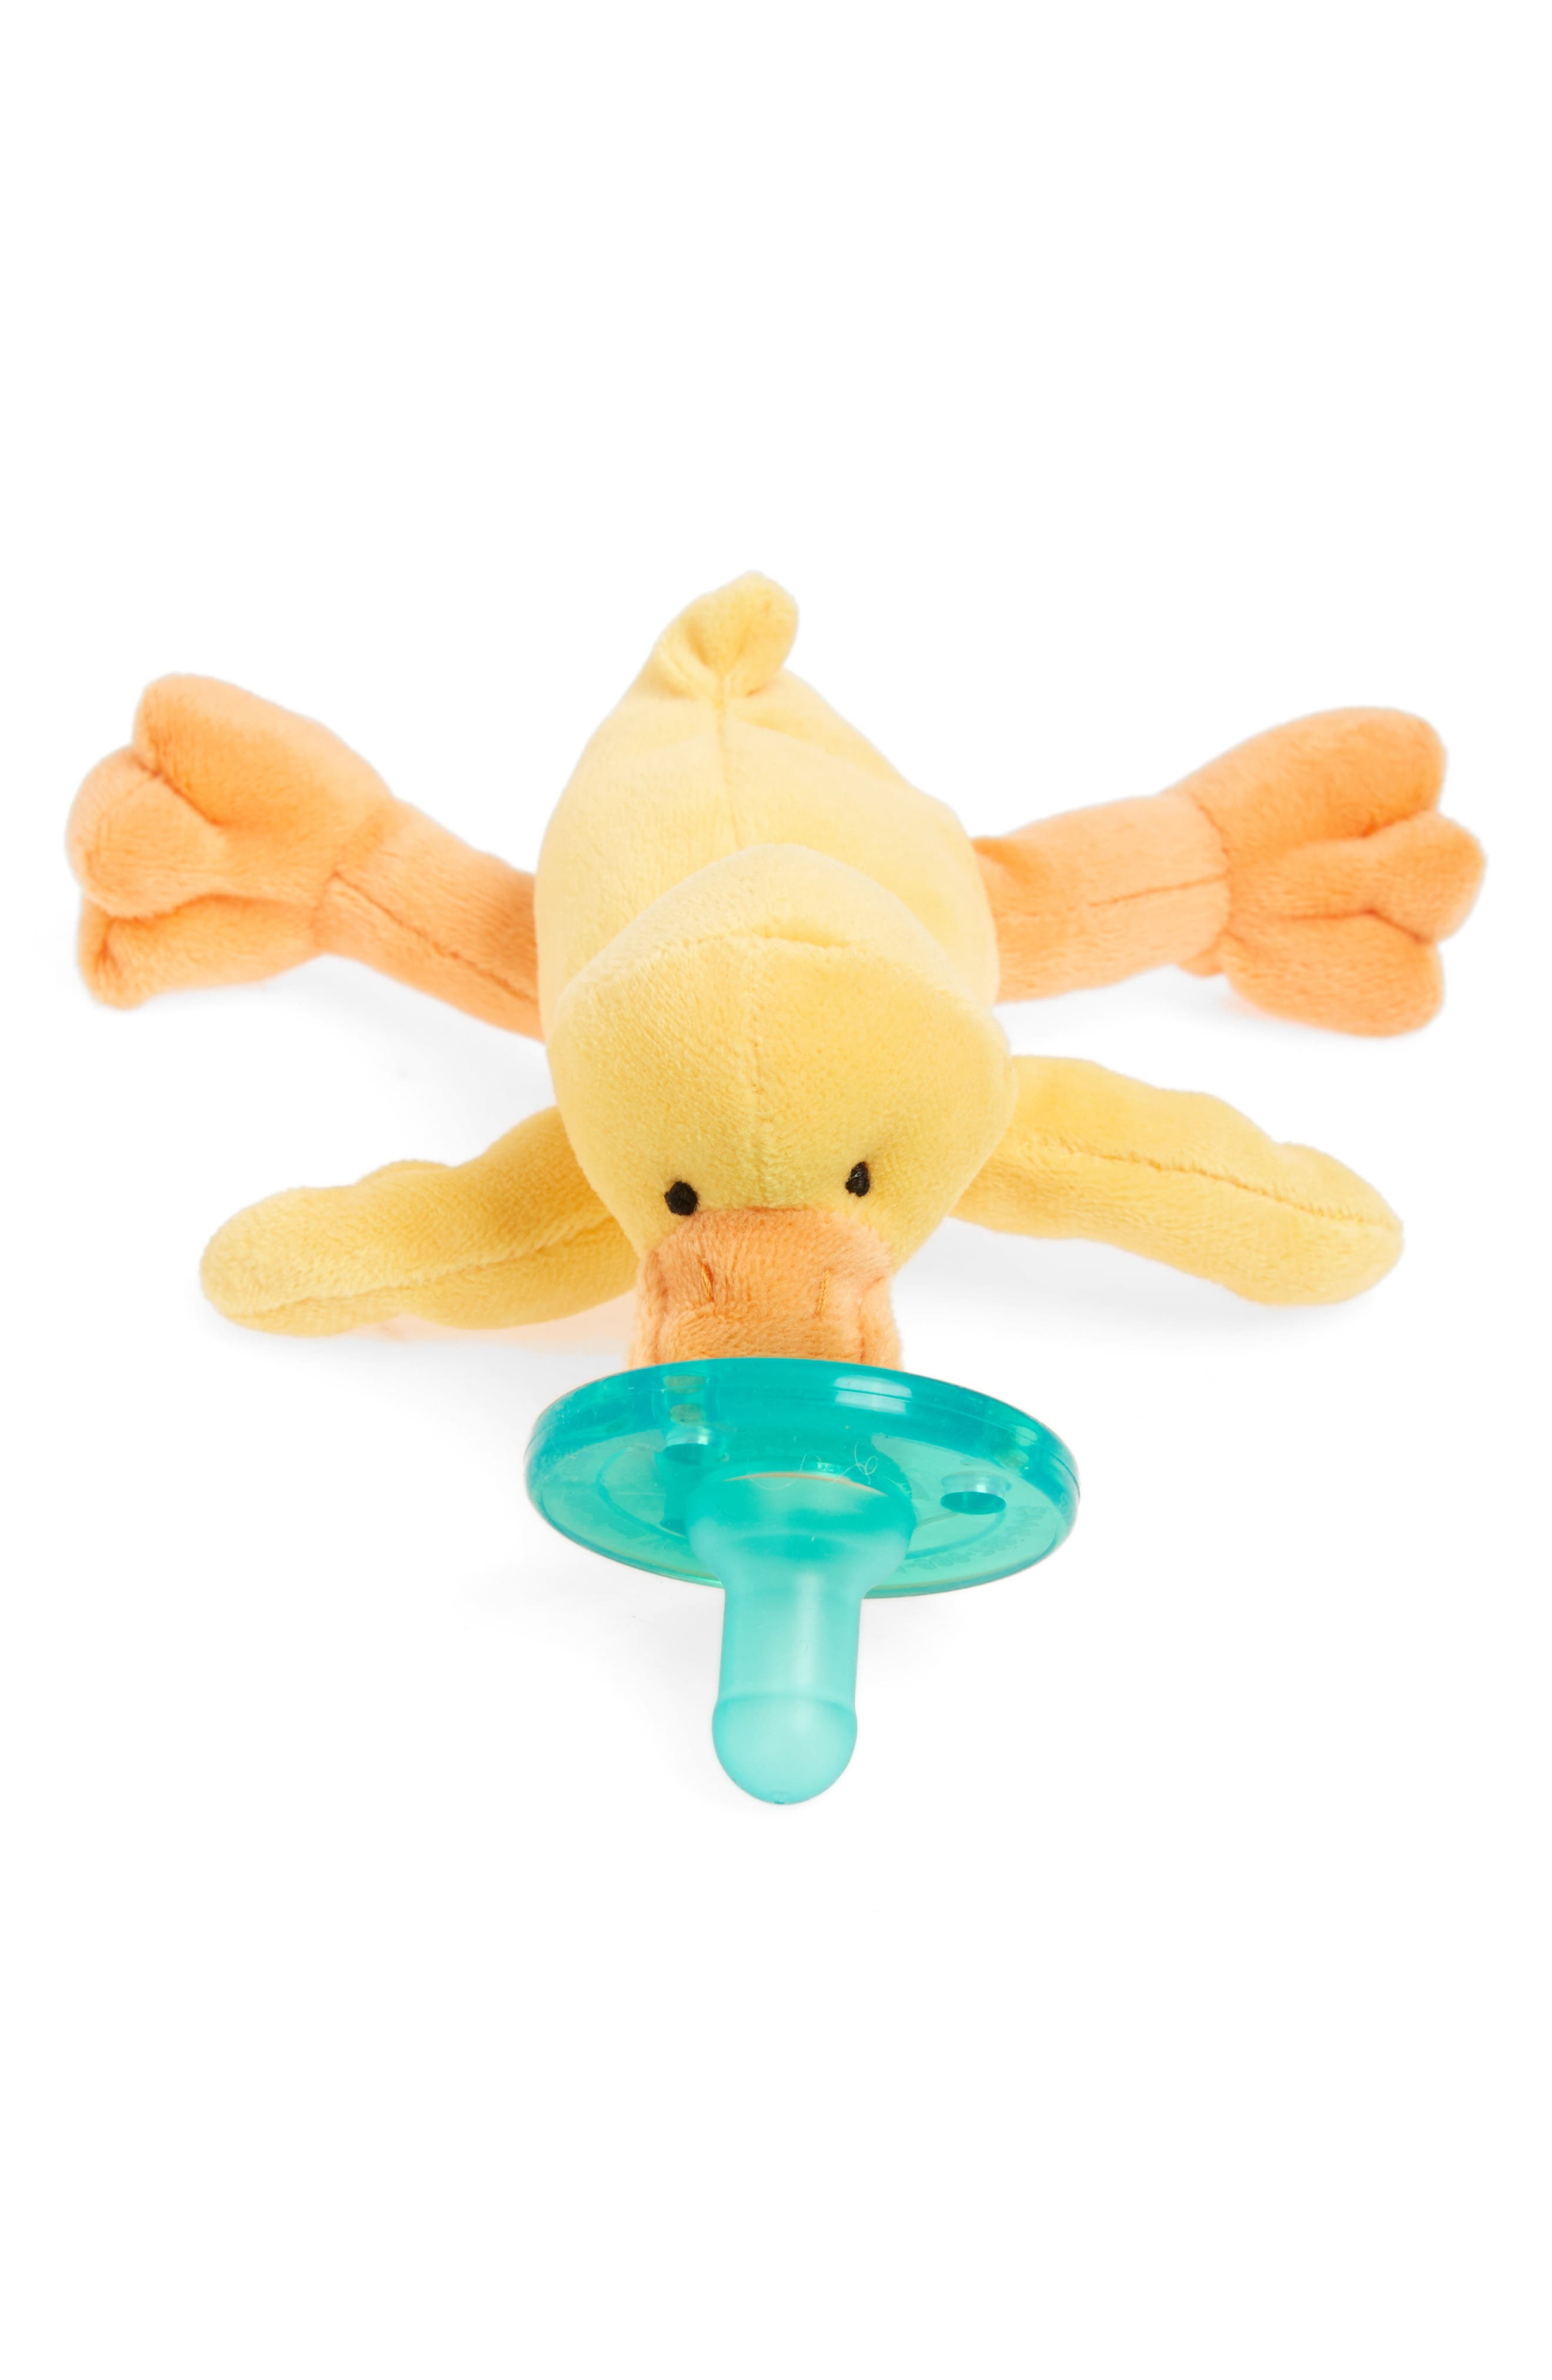 Baby Yellow Duck Pacifier Toy,                         Main,                         color, Yellow